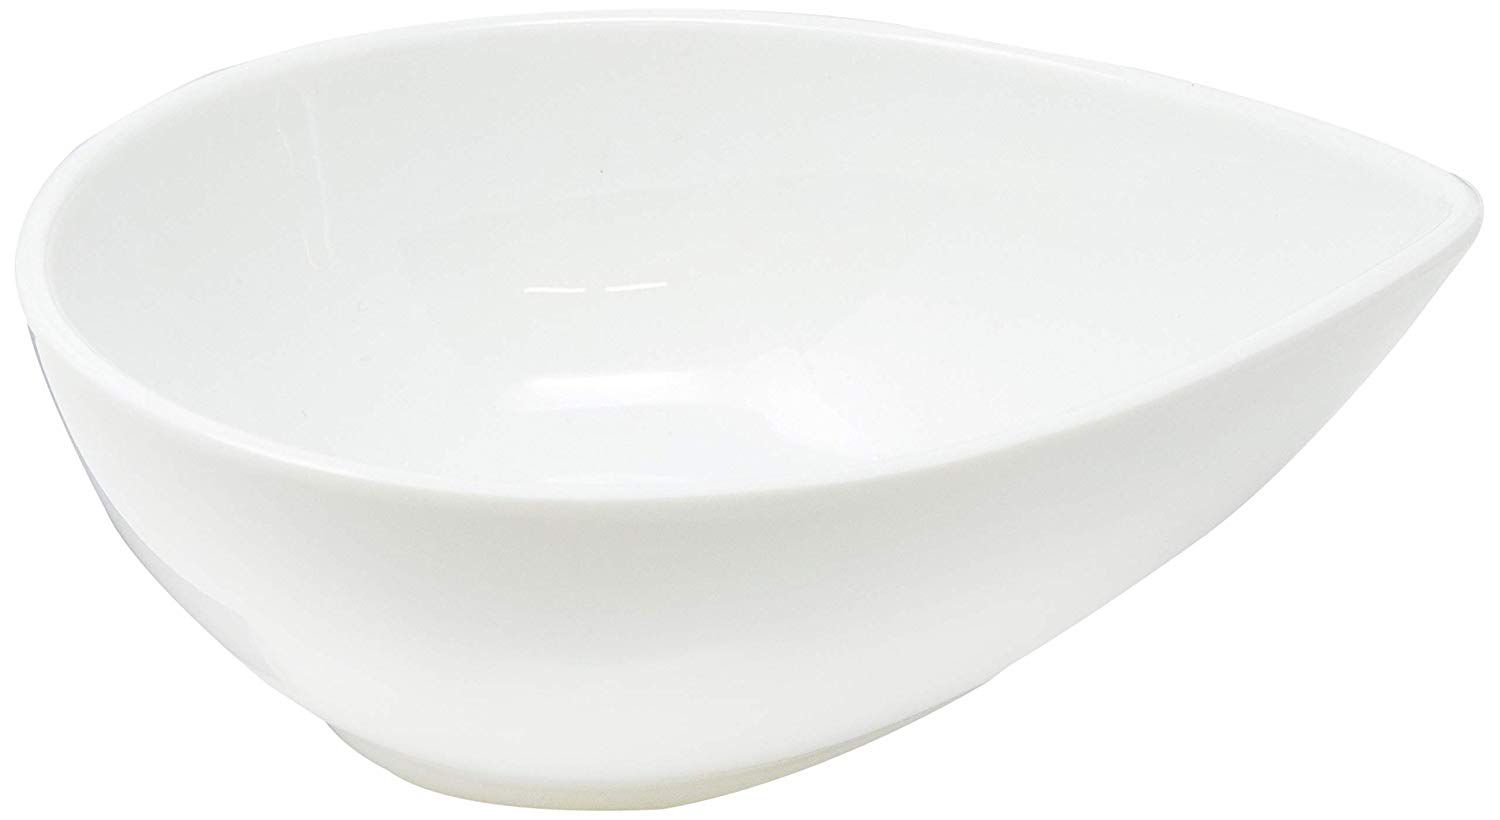 Bowl Gota Haus Concept 300ml Branco 51201/001